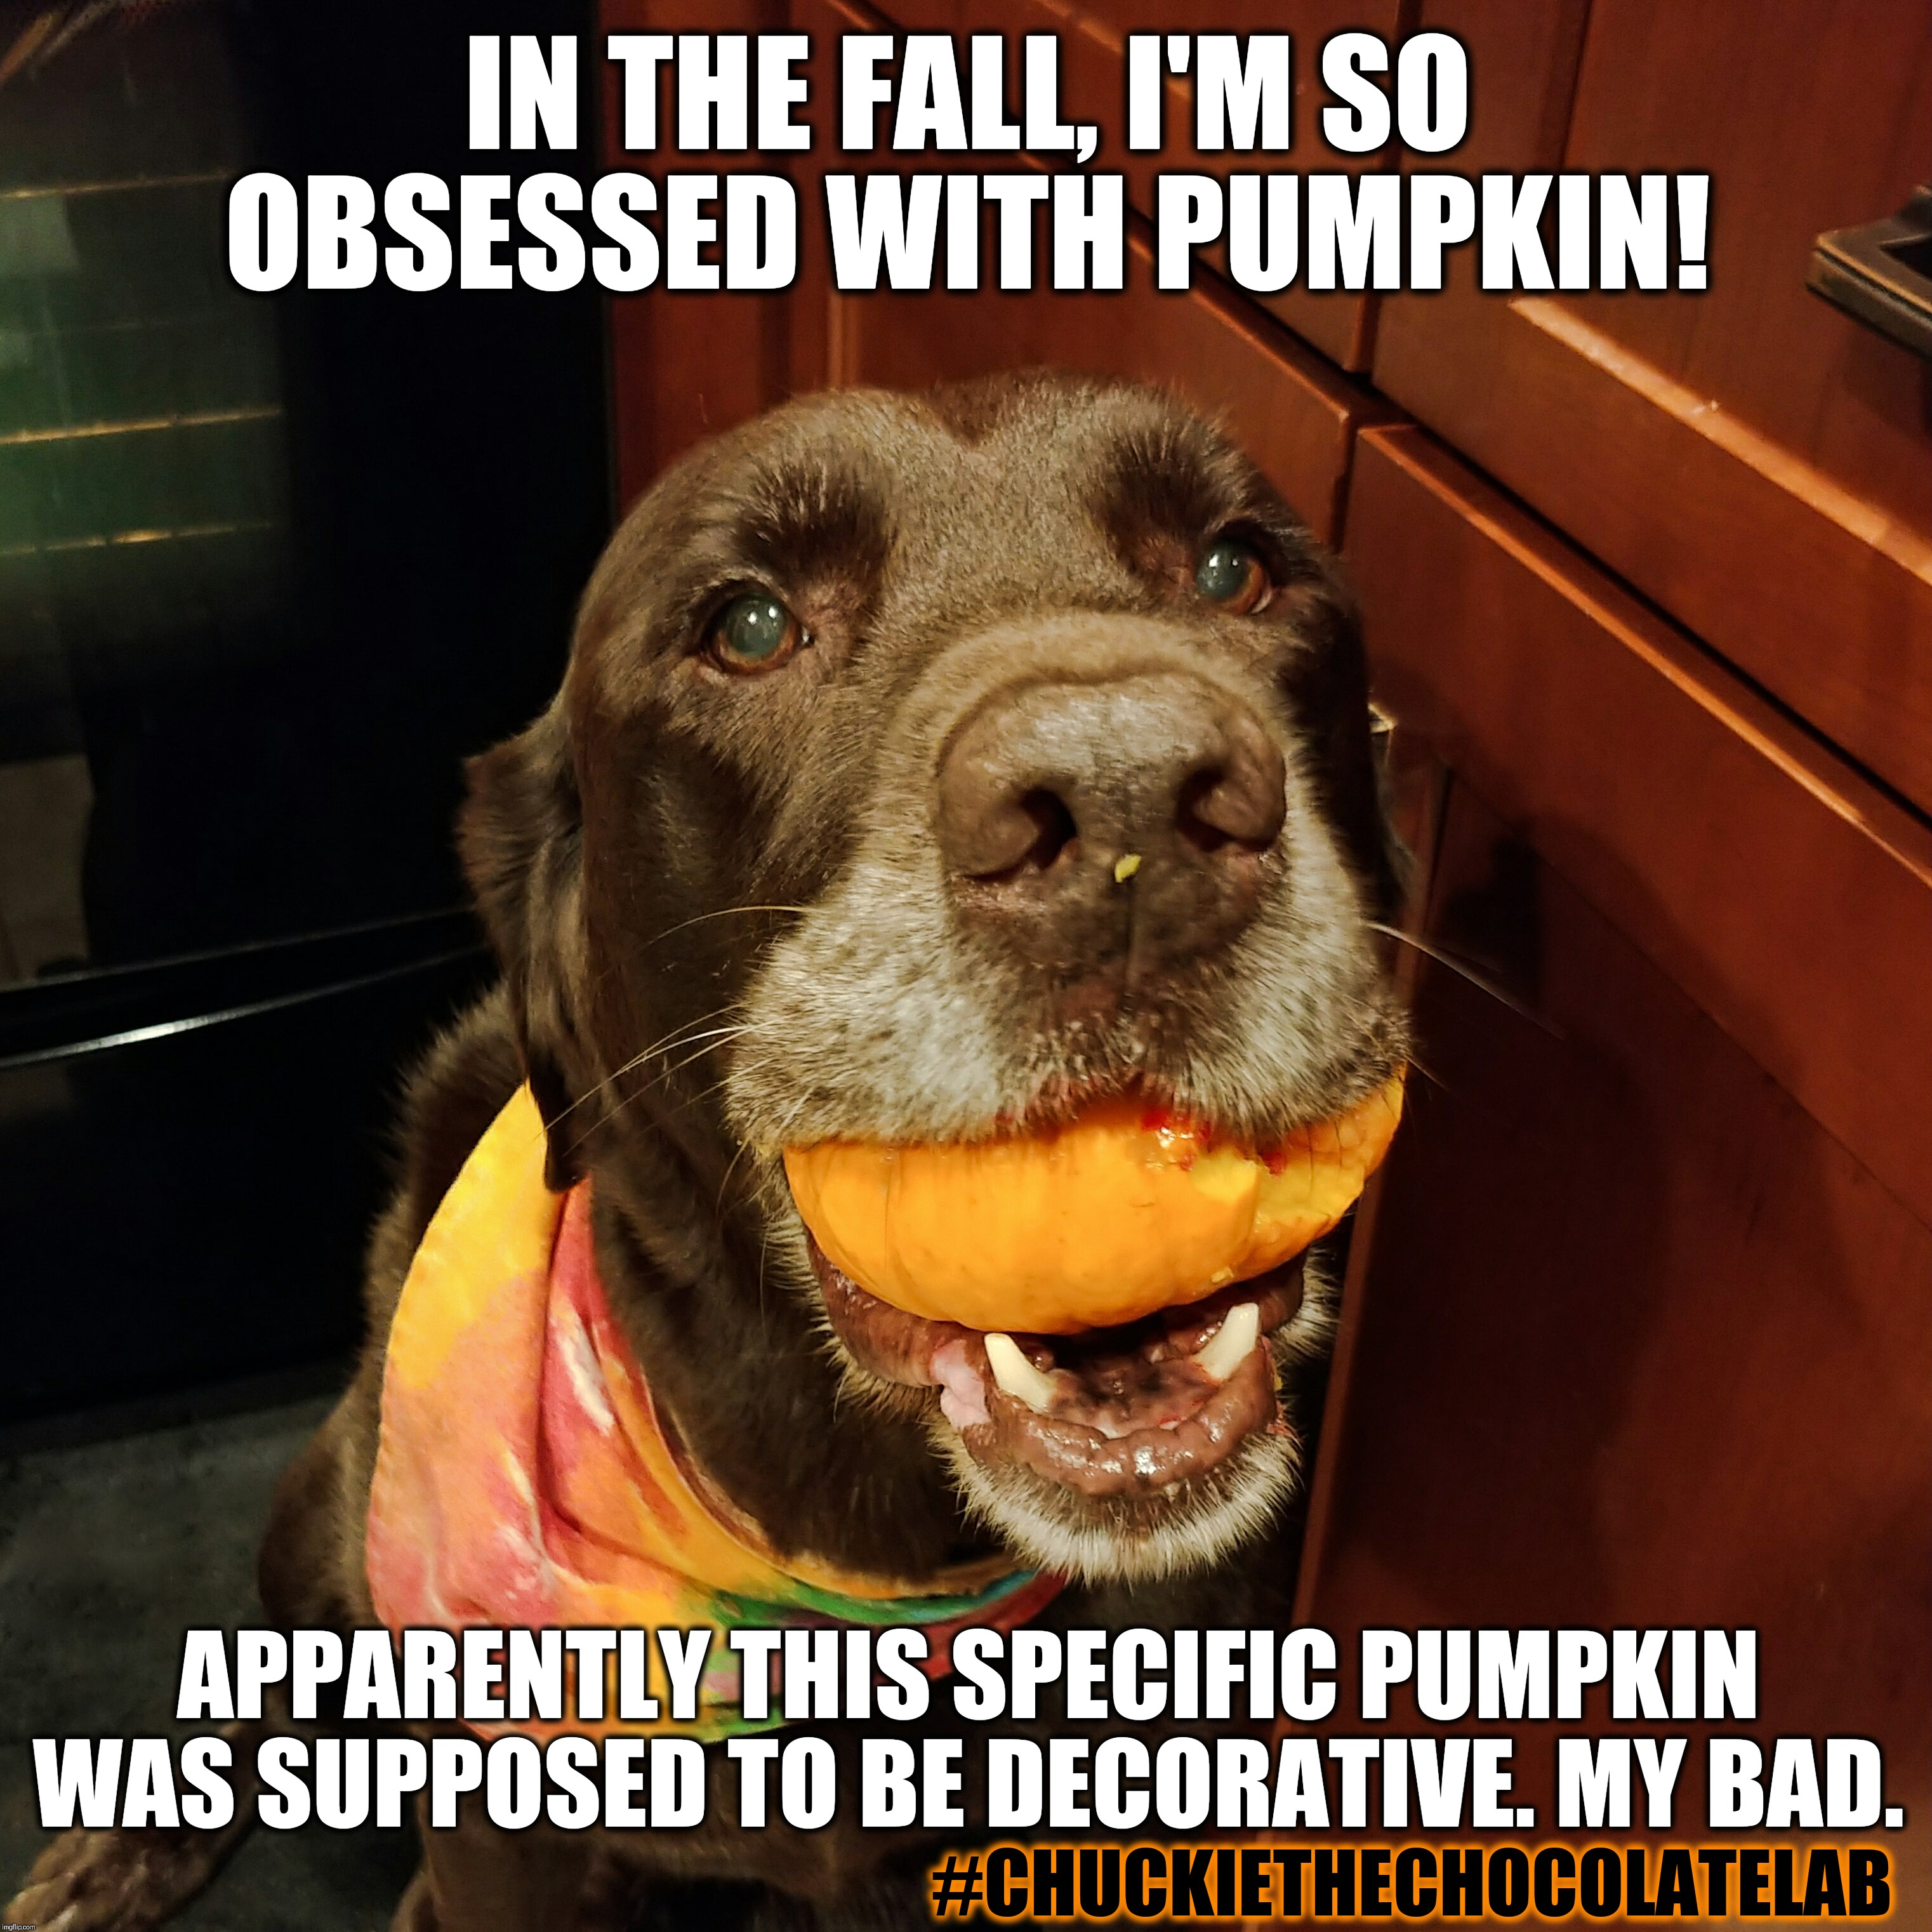 Pumpkins are delicious  | IN THE FALL, I'M SO OBSESSED WITH PUMPKIN! #CHUCKIETHECHOCOLATELAB APPARENTLY THIS SPECIFIC PUMPKIN WAS SUPPOSED TO BE DECORATIVE. MY BAD. | image tagged in chuckie the chocolate lab,pumpkin,fall,autumn,dogs,funny | made w/ Imgflip meme maker